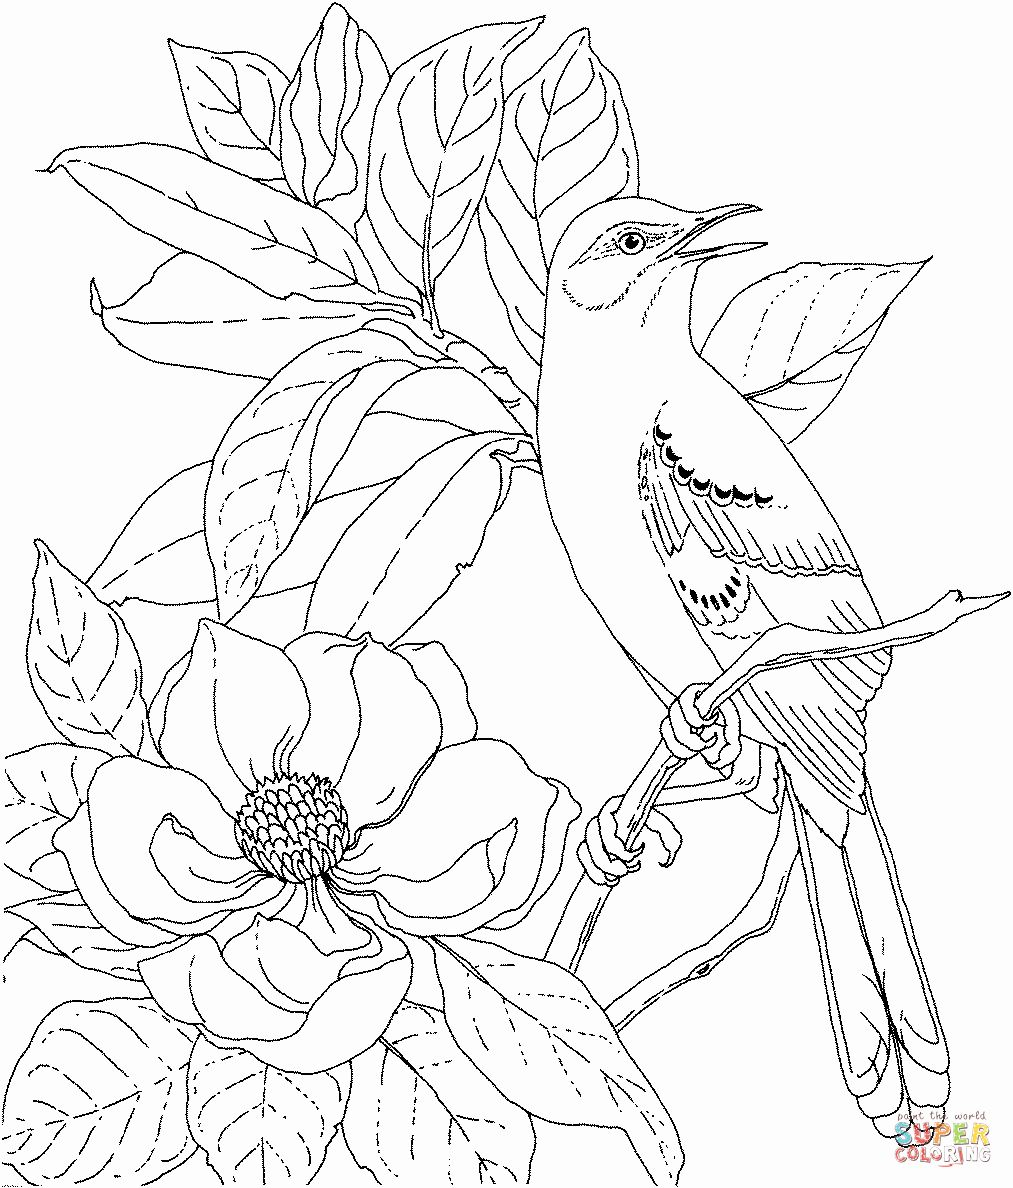 Texas State Bird Coloring Page Unique Louisiana State Bird And Flower Coloring Page Flowers Hea Bird Coloring Pages Owl Coloring Pages Geometric Coloring Pages